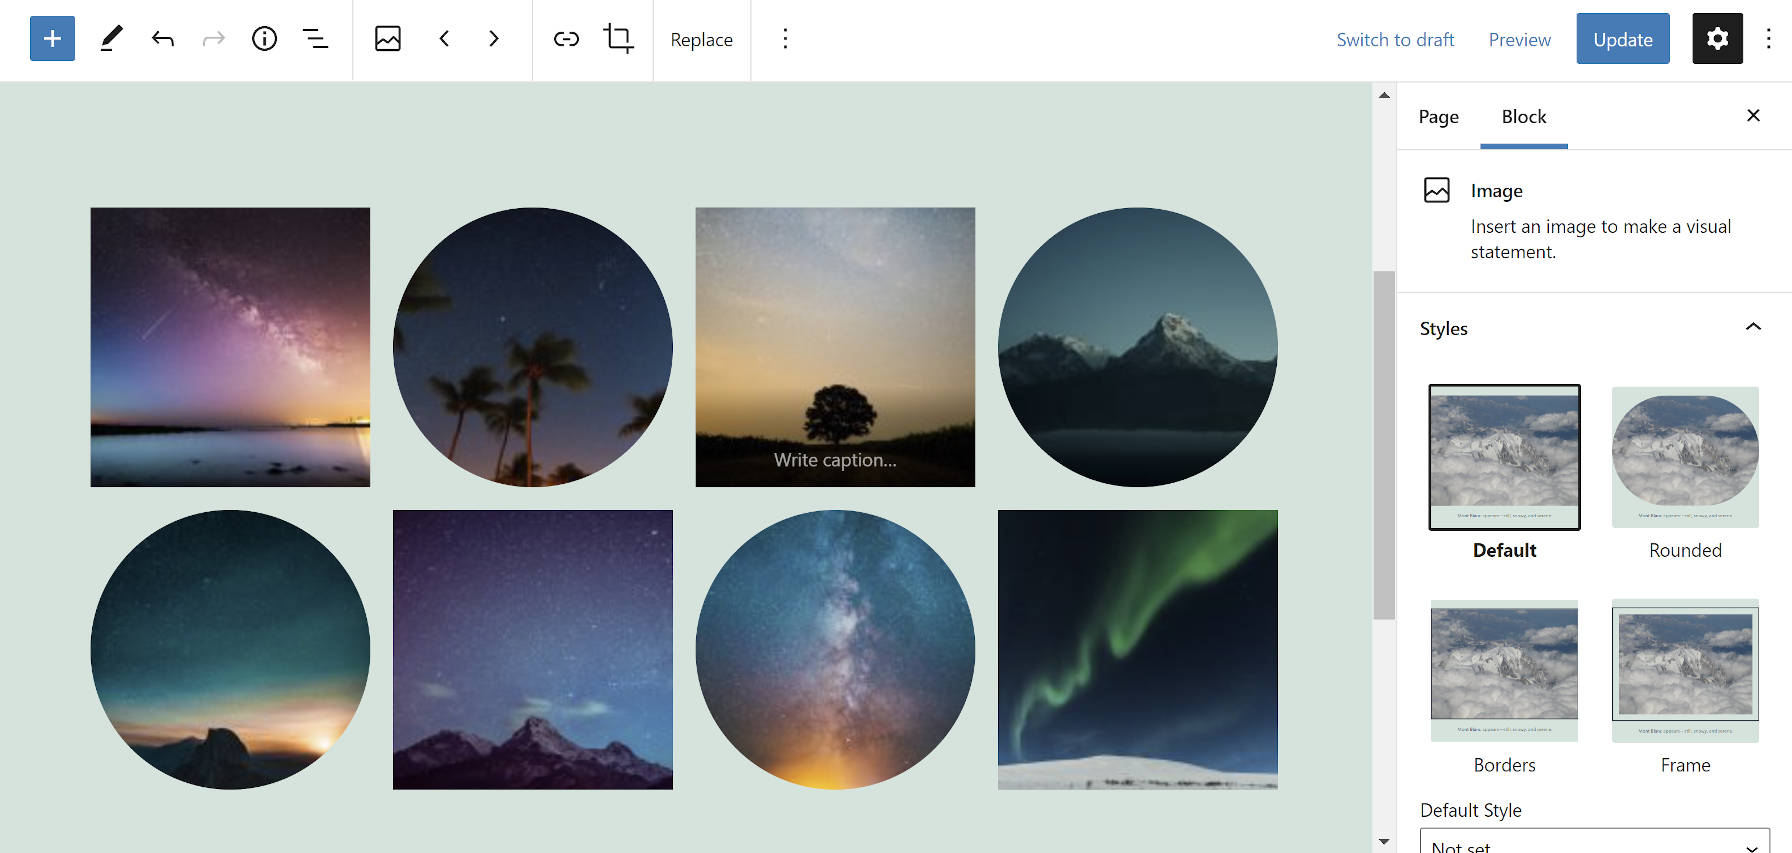 Gallery block in the WordPress editor with alternating round and square image shapes.